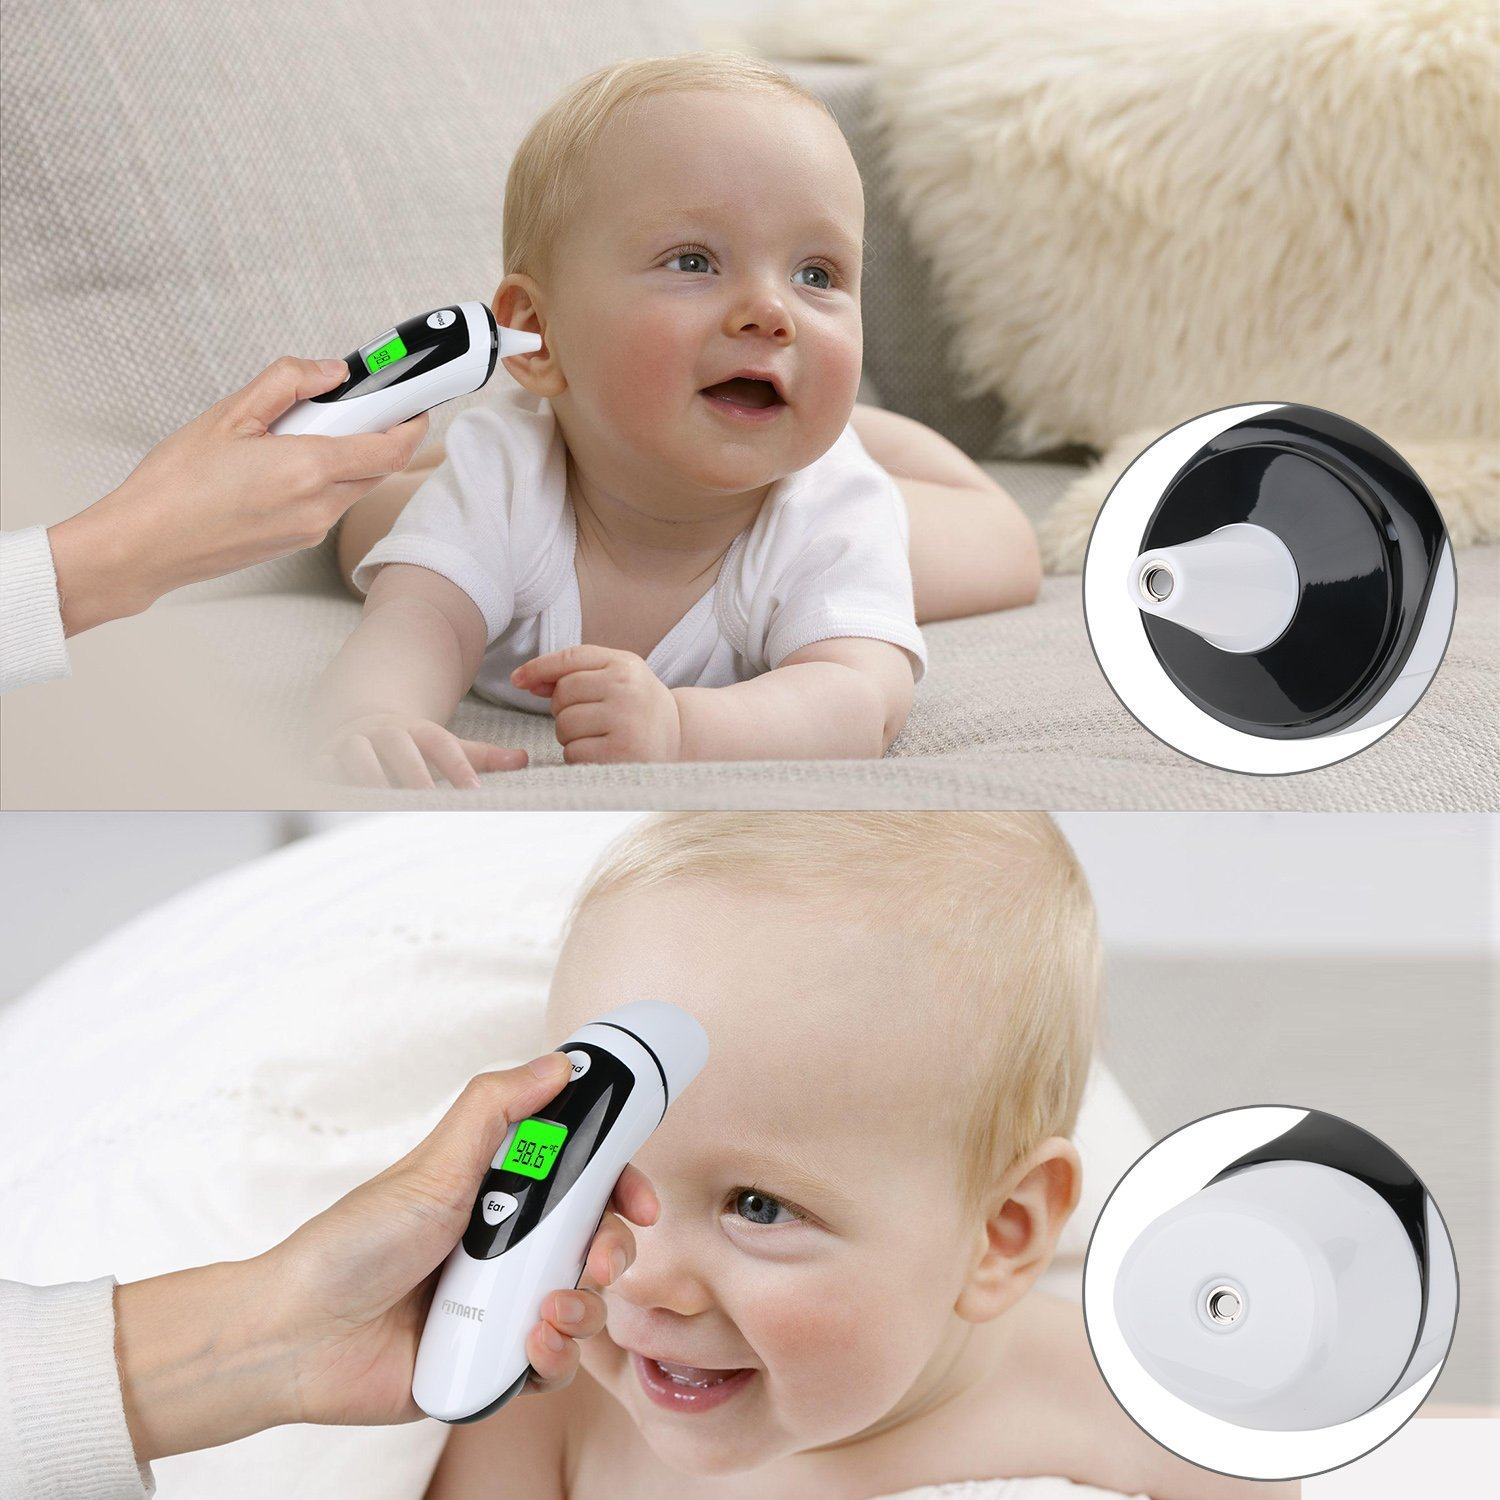 FITNATE FDA & CE Approved for Infant/Baby & Adult Ear thermometer and Forehead Thermometer, Medical Upgraded Infrared Lens Technology on Improved Accuracy